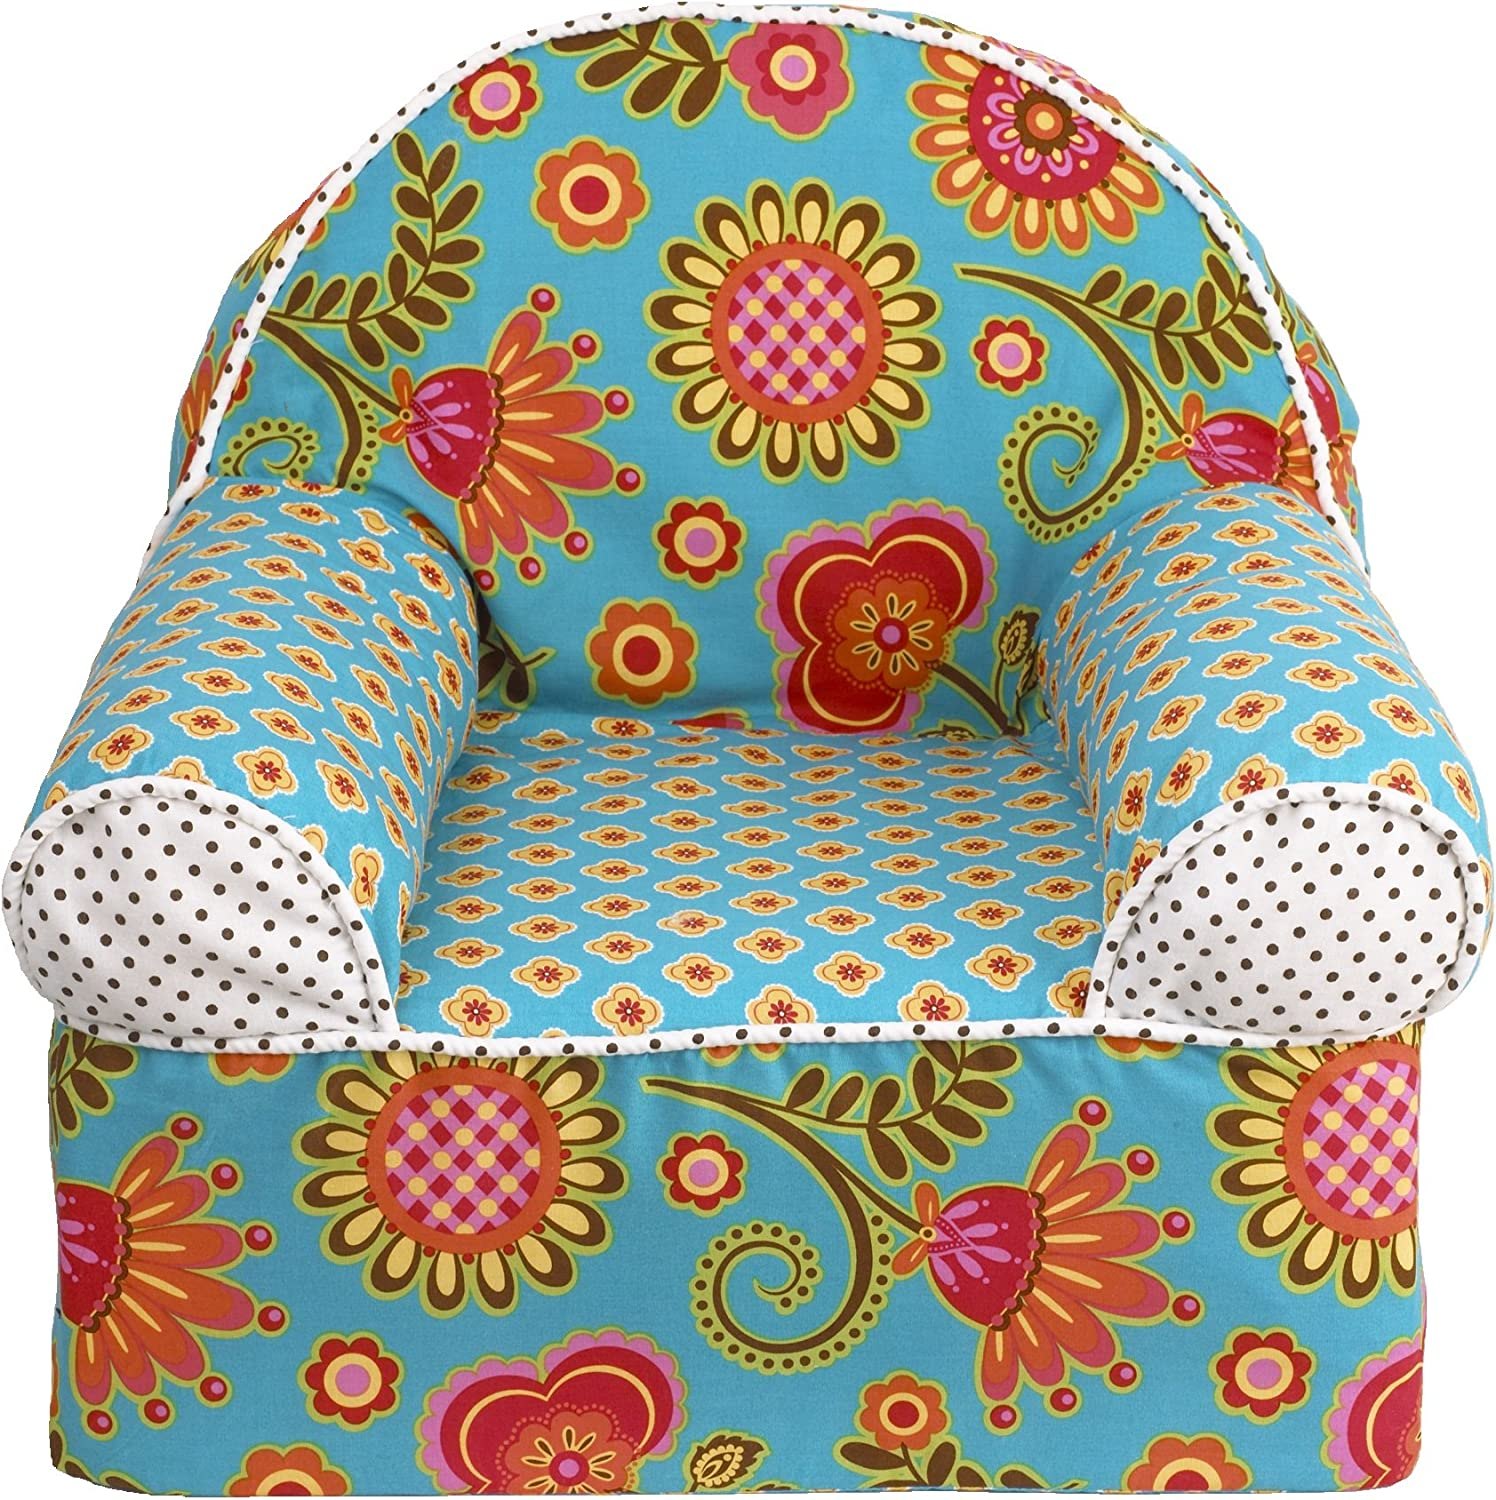 Cotton Tale Designs Gypsy Chair, Turquoise Red orange Yellow